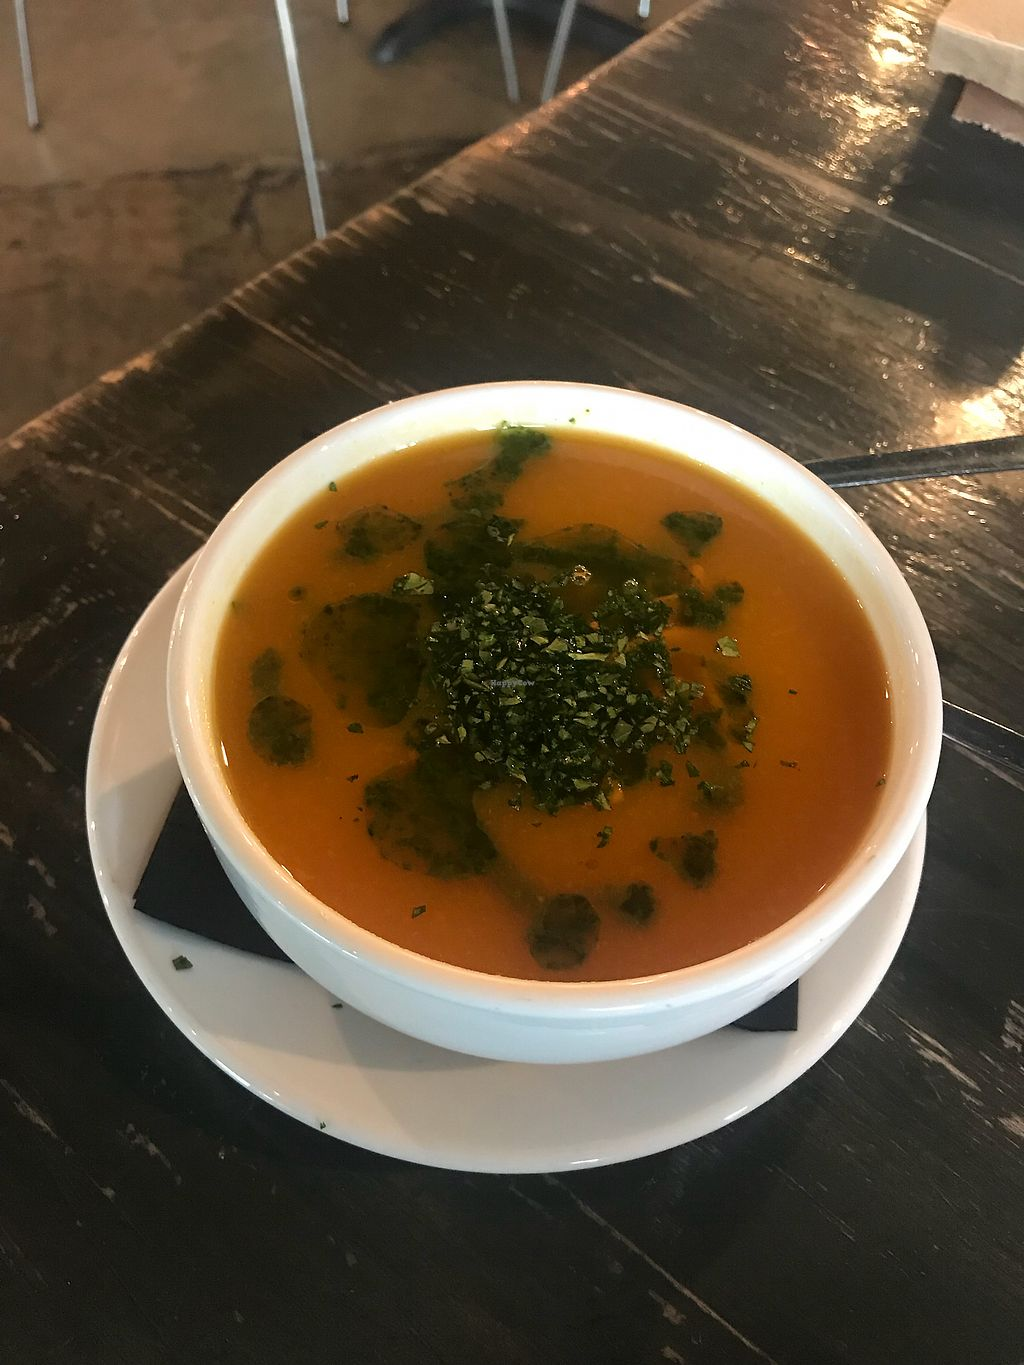 """Photo of Avo  by <a href=""""/members/profile/rachelurioste"""">rachelurioste</a> <br/>carrot ginger soup  <br/> April 6, 2018  - <a href='/contact/abuse/image/49007/381387'>Report</a>"""